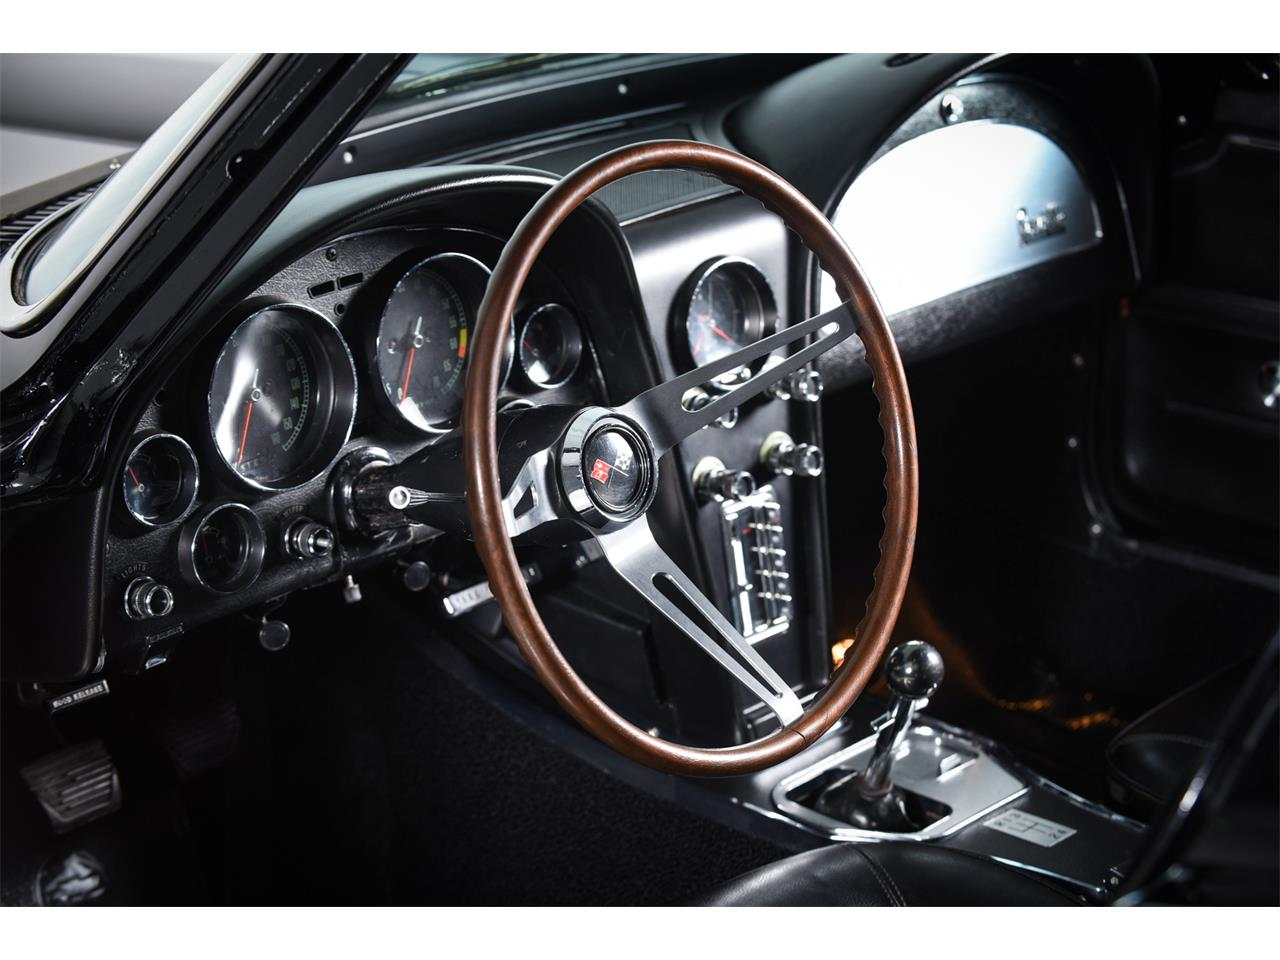 1966 Chevrolet Corvette for sale in Farmingdale, NY – photo 18